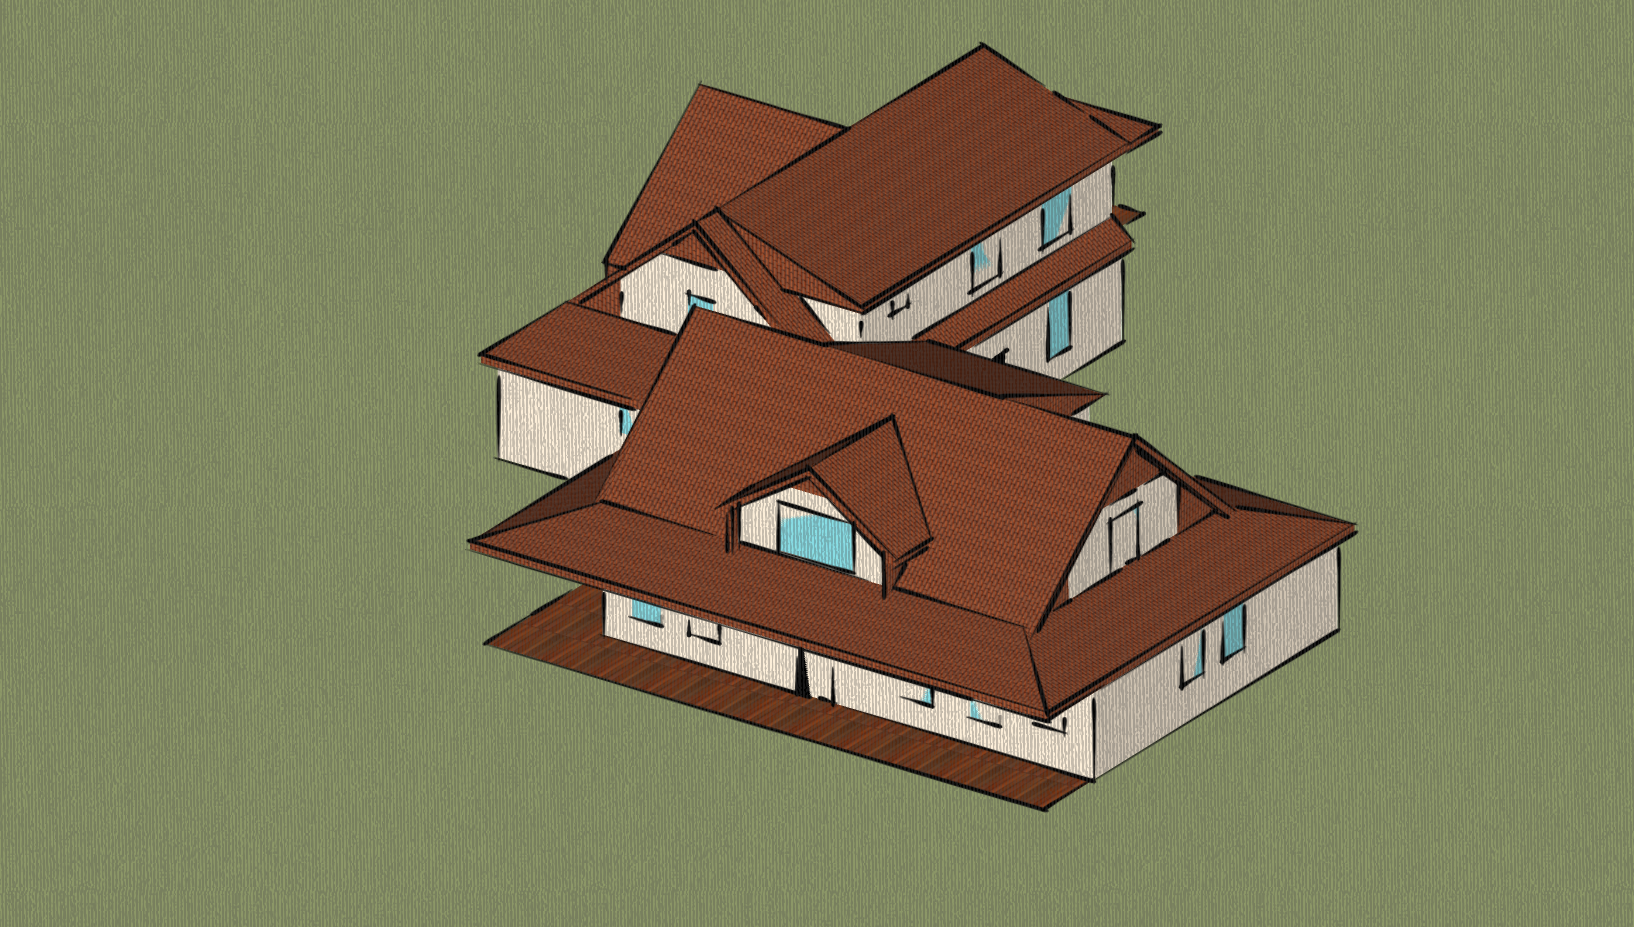 SketchUp model for HERS